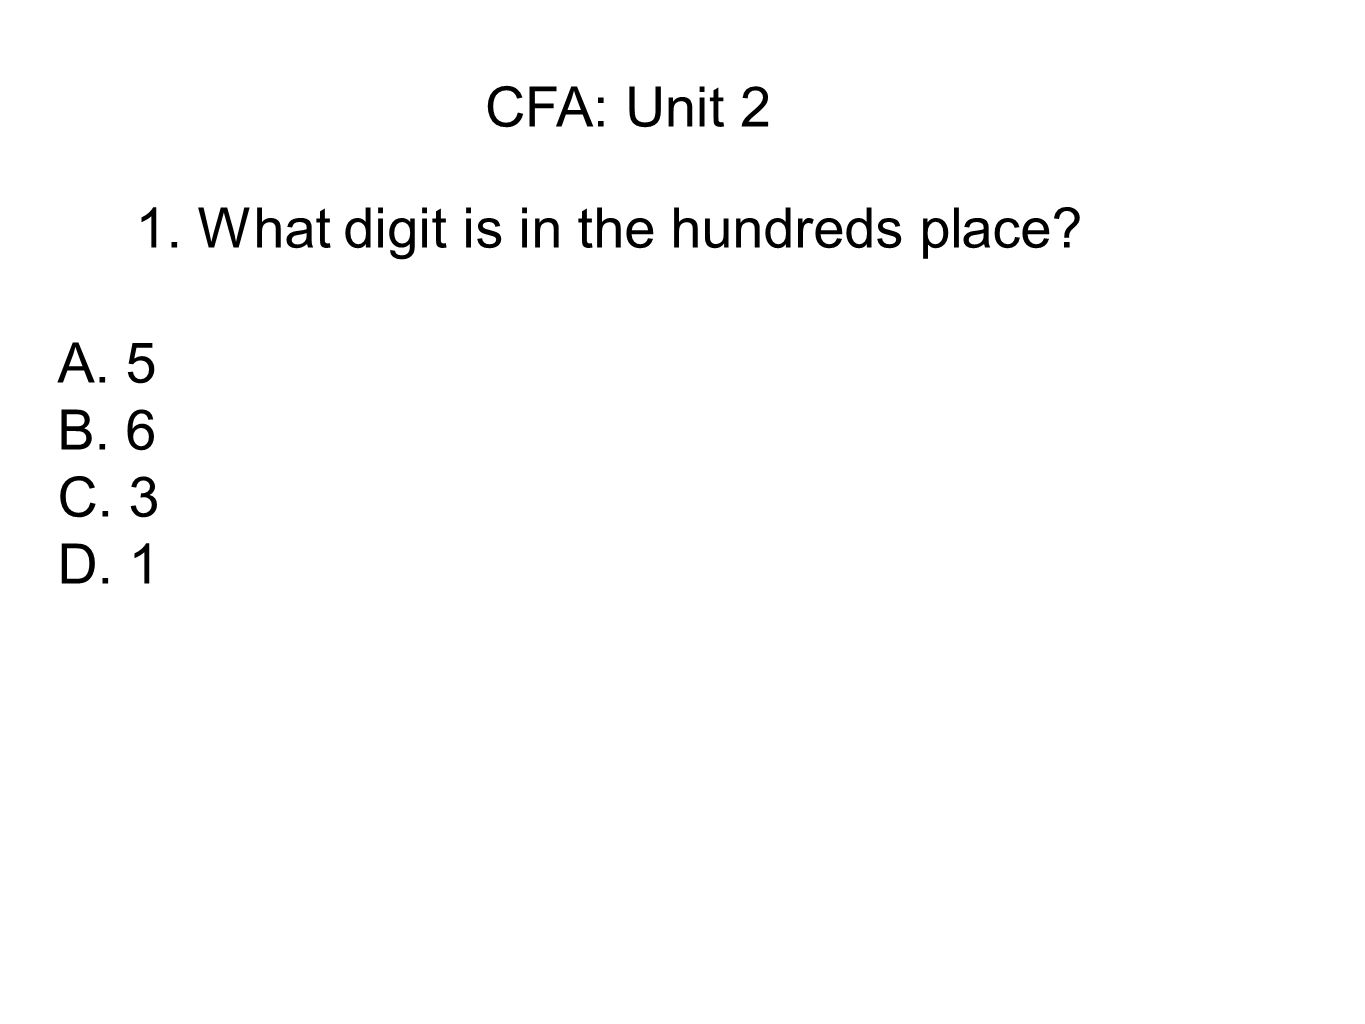 CFA: Unit 2 1. What digit is in the hundreds place A. 5 B. 6 C. 3 D. 1